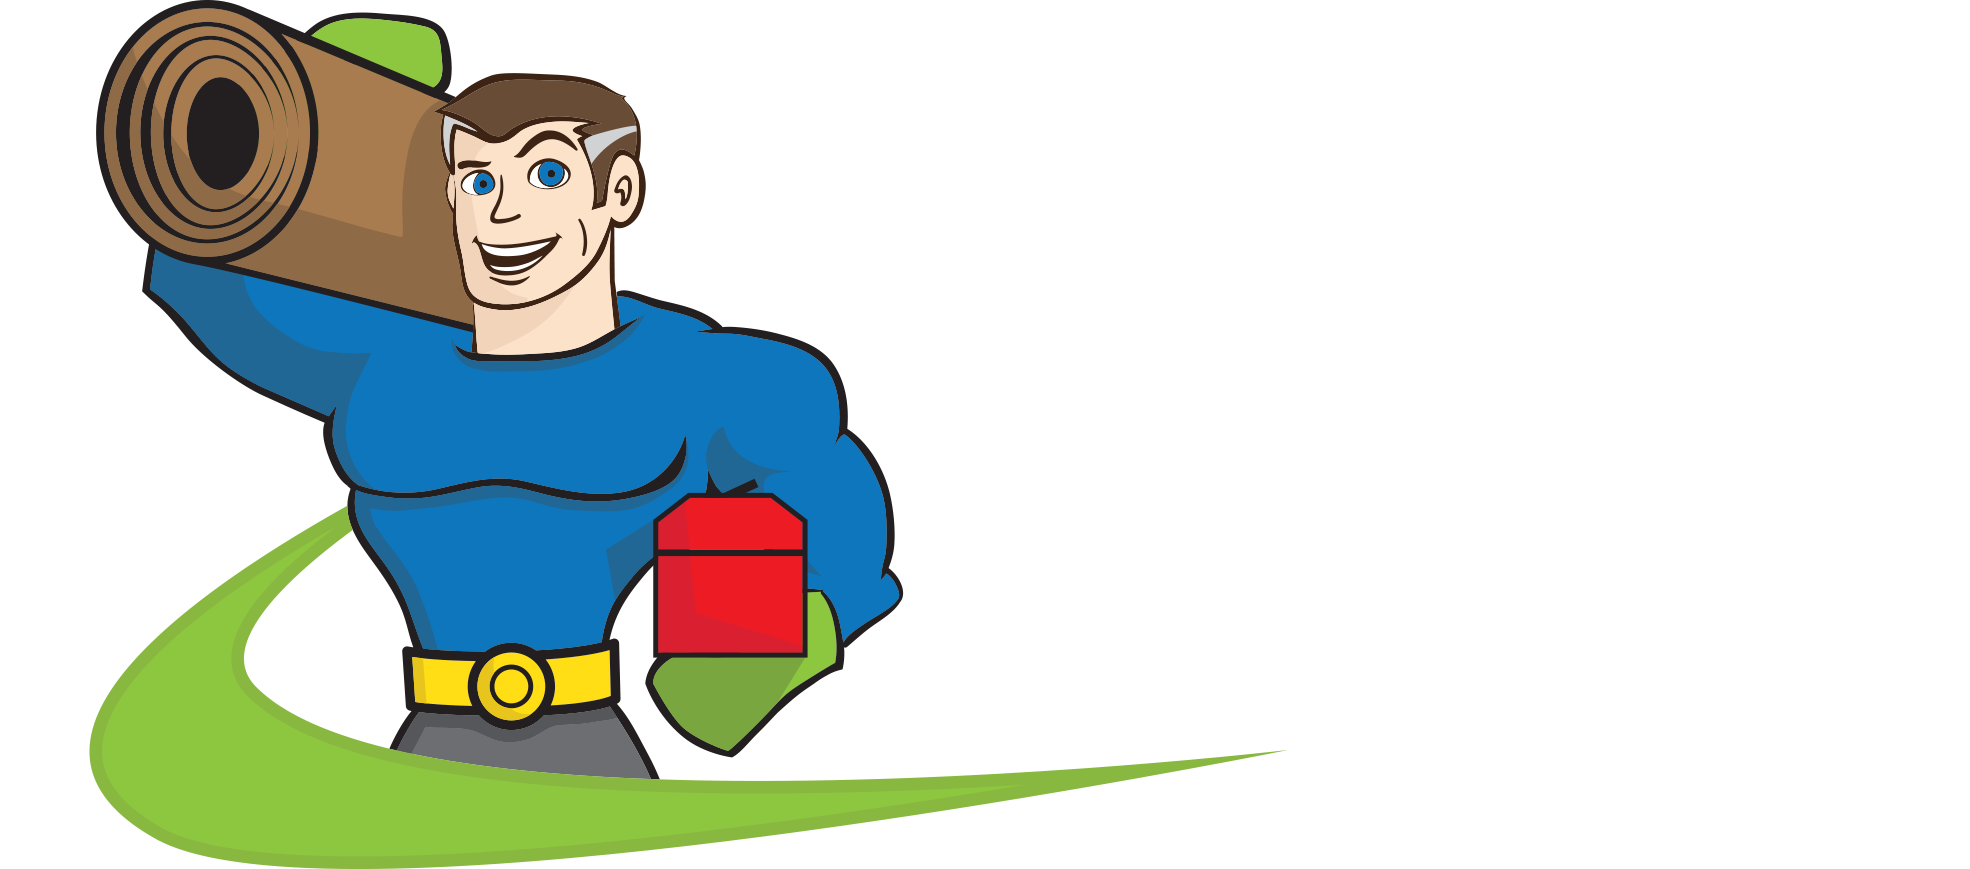 House repair clipart image library download Home - Carpet Guy Repair image library download